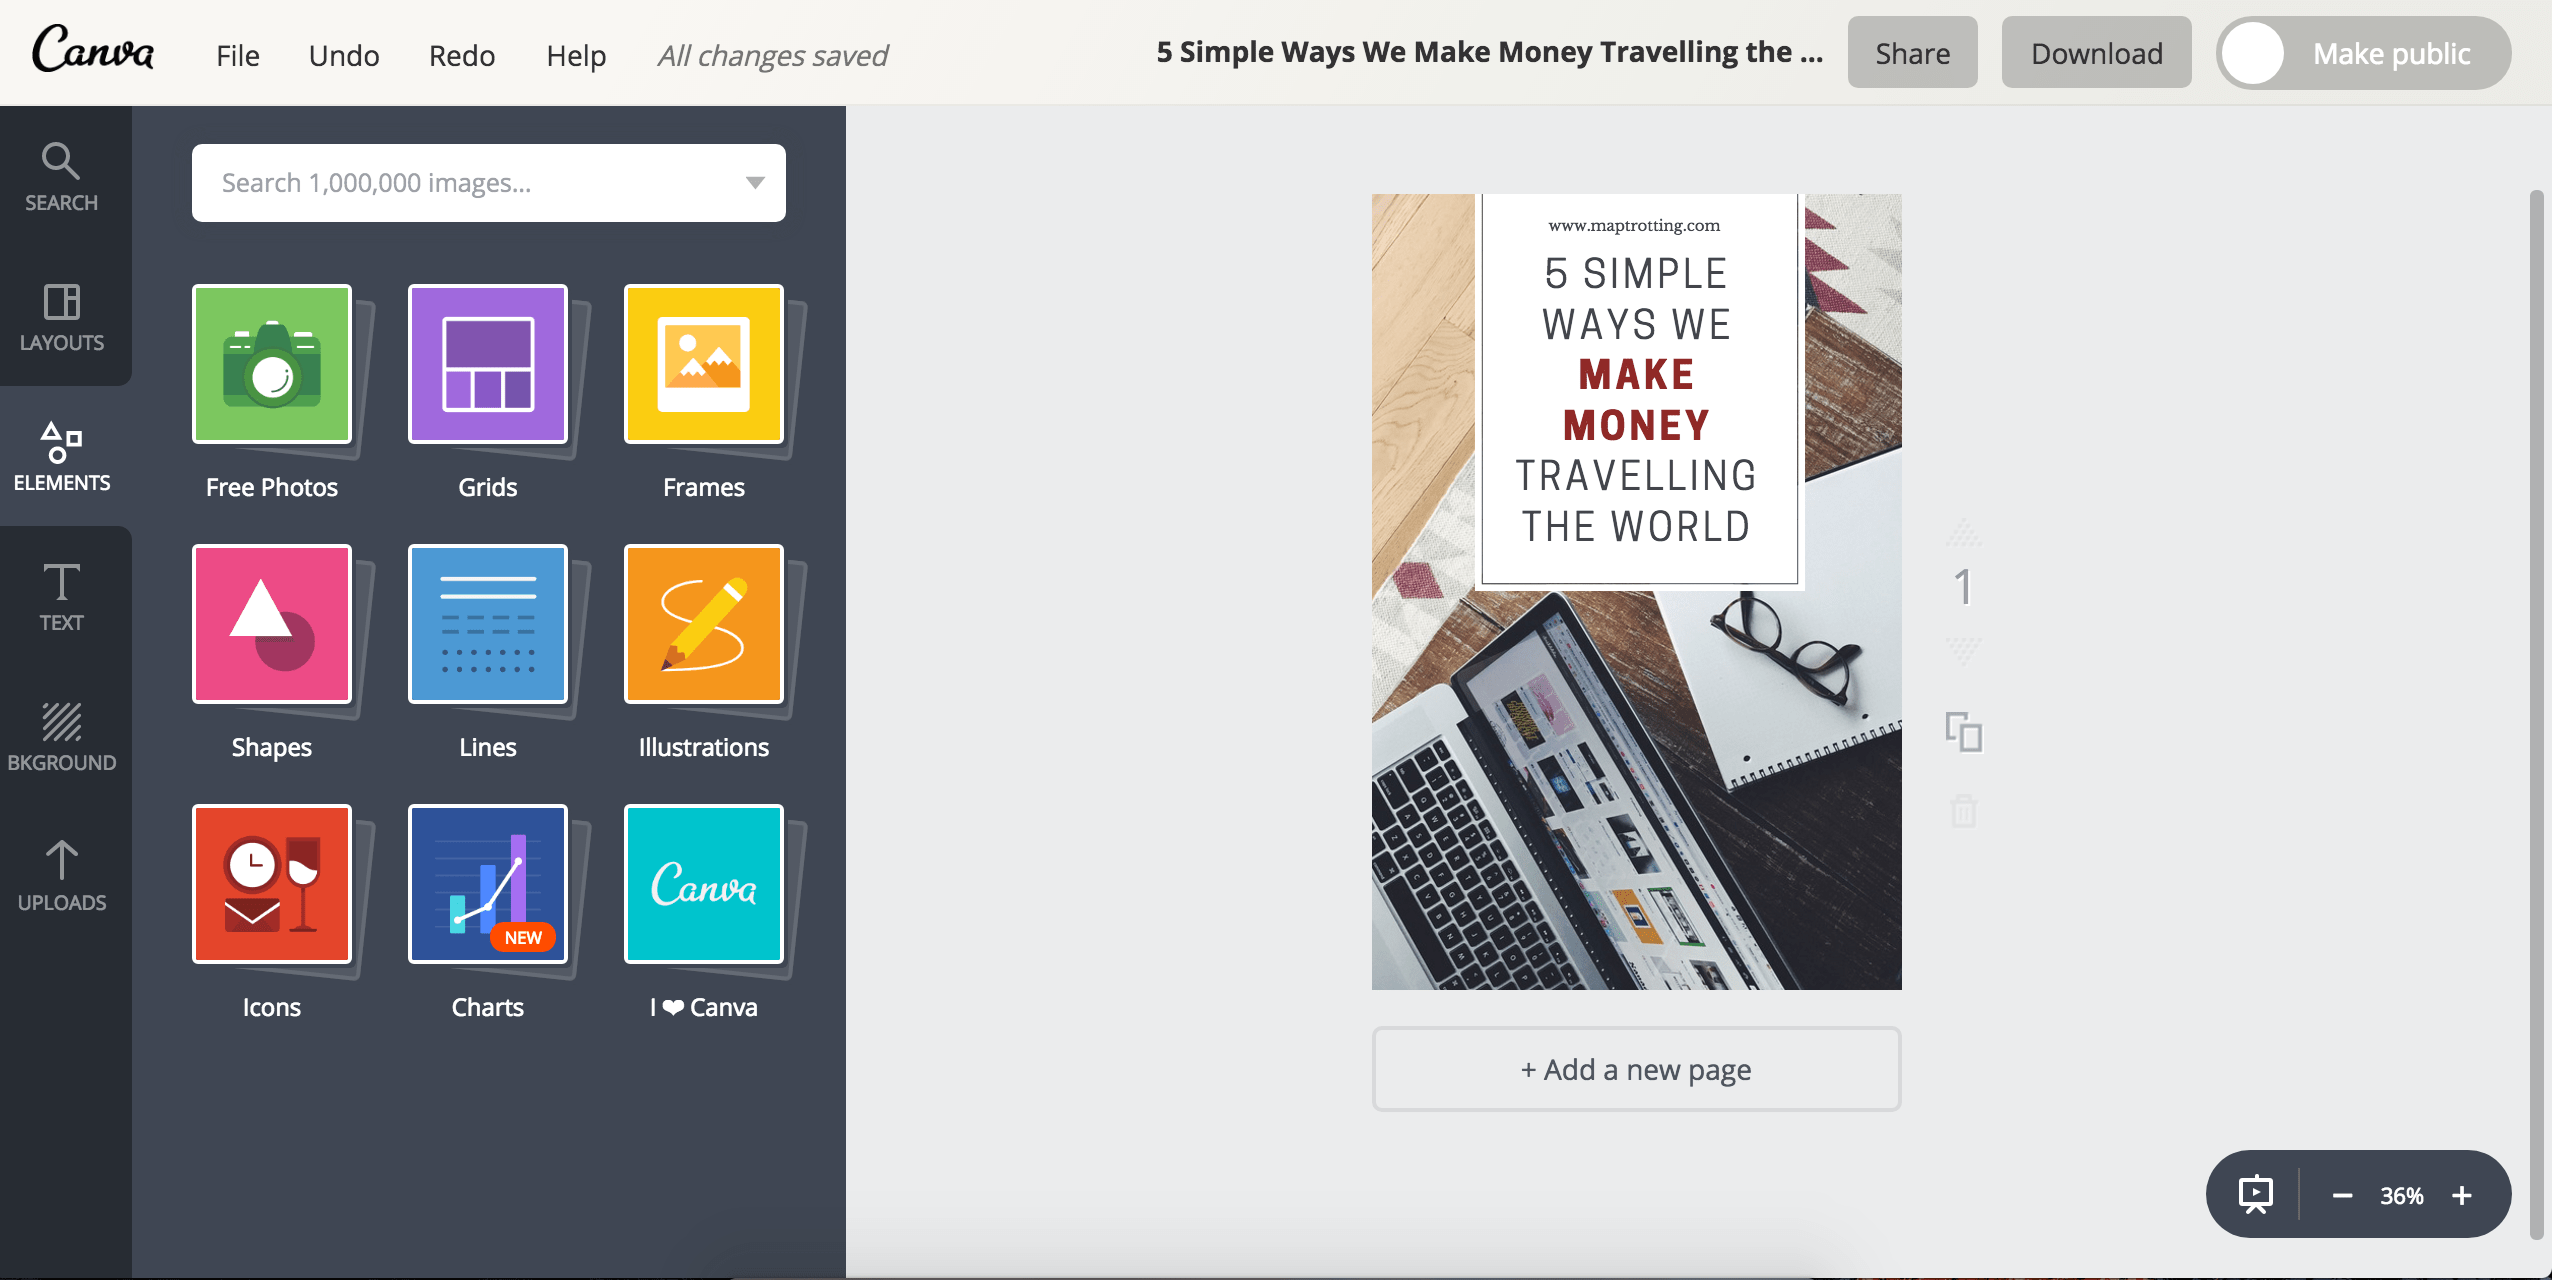 5 Simple Ways We Make Money Travelling the World